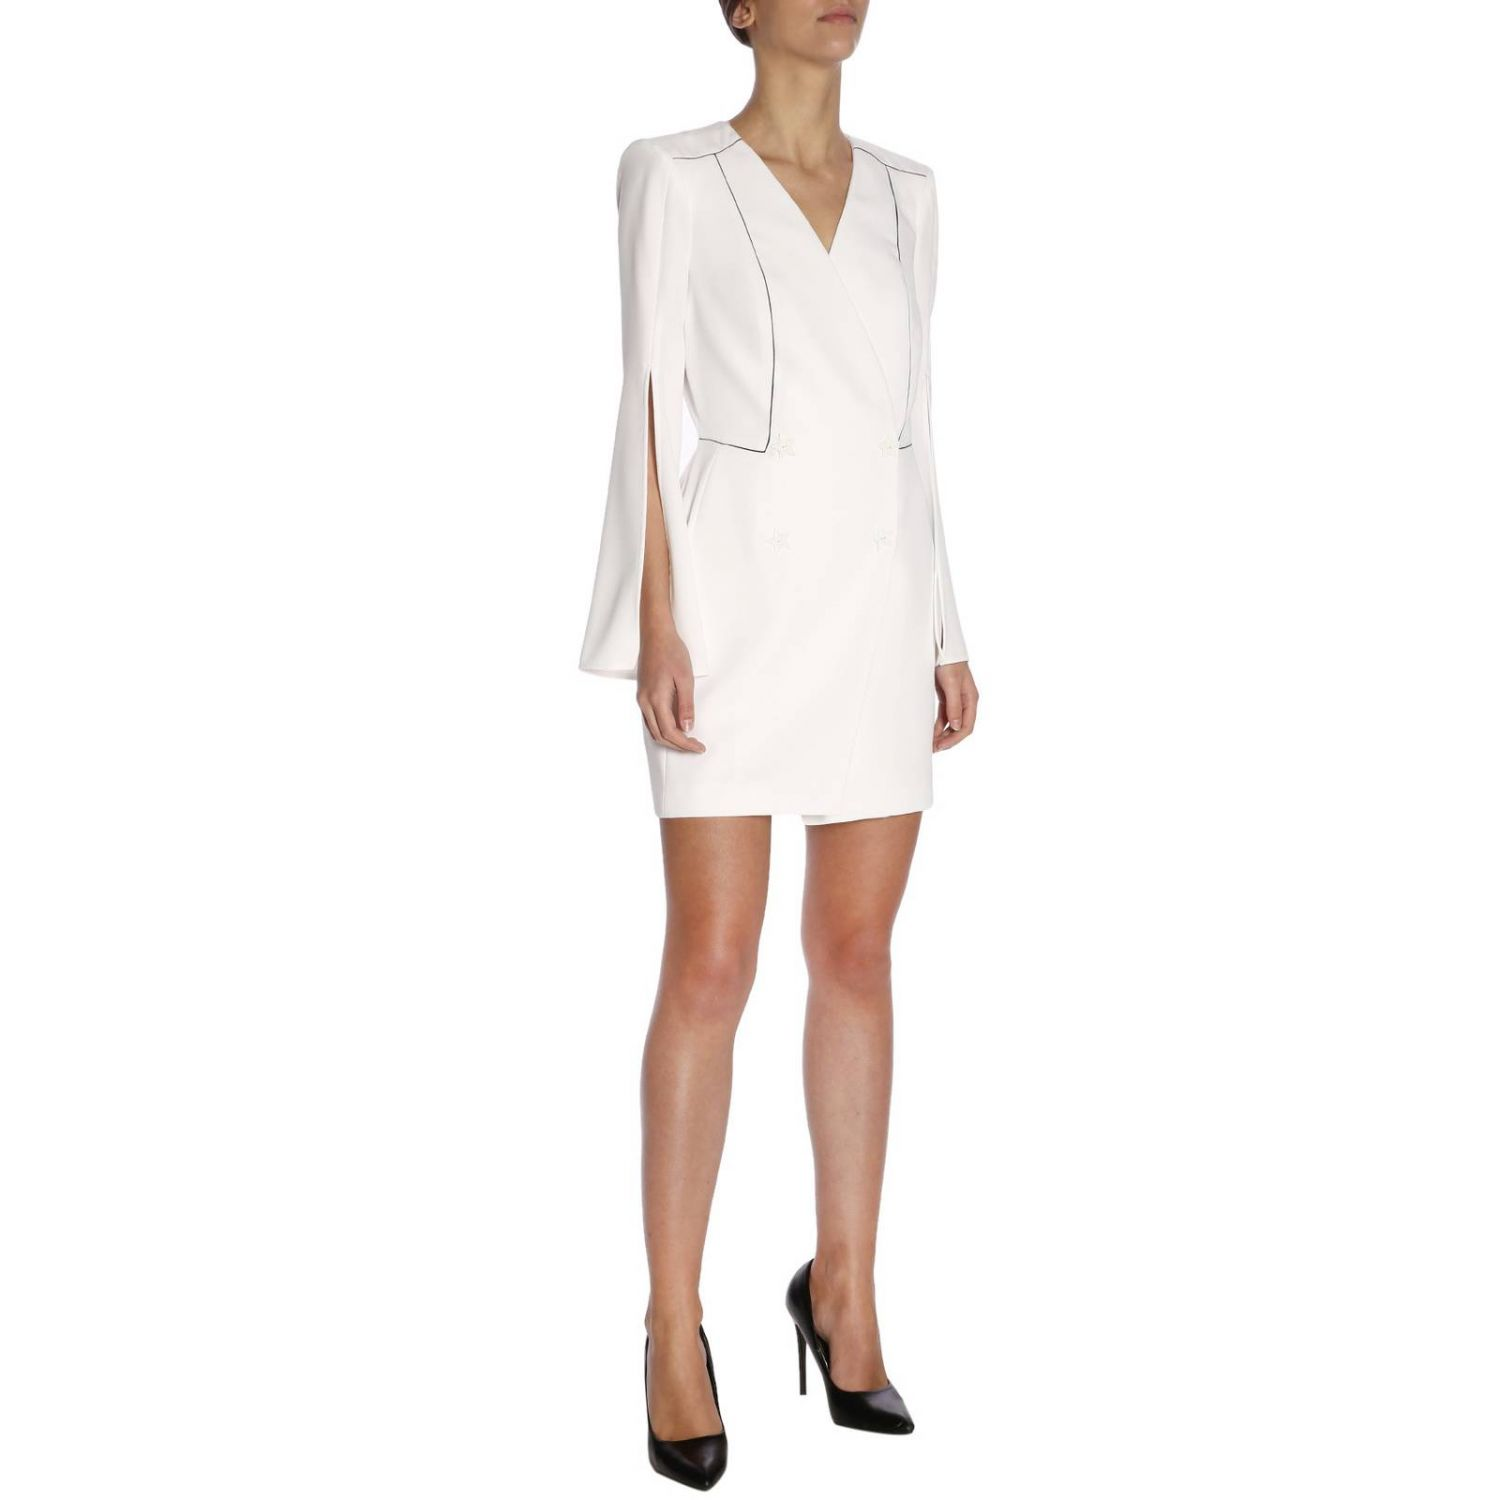 Dress women Elisabetta Franchi white 4